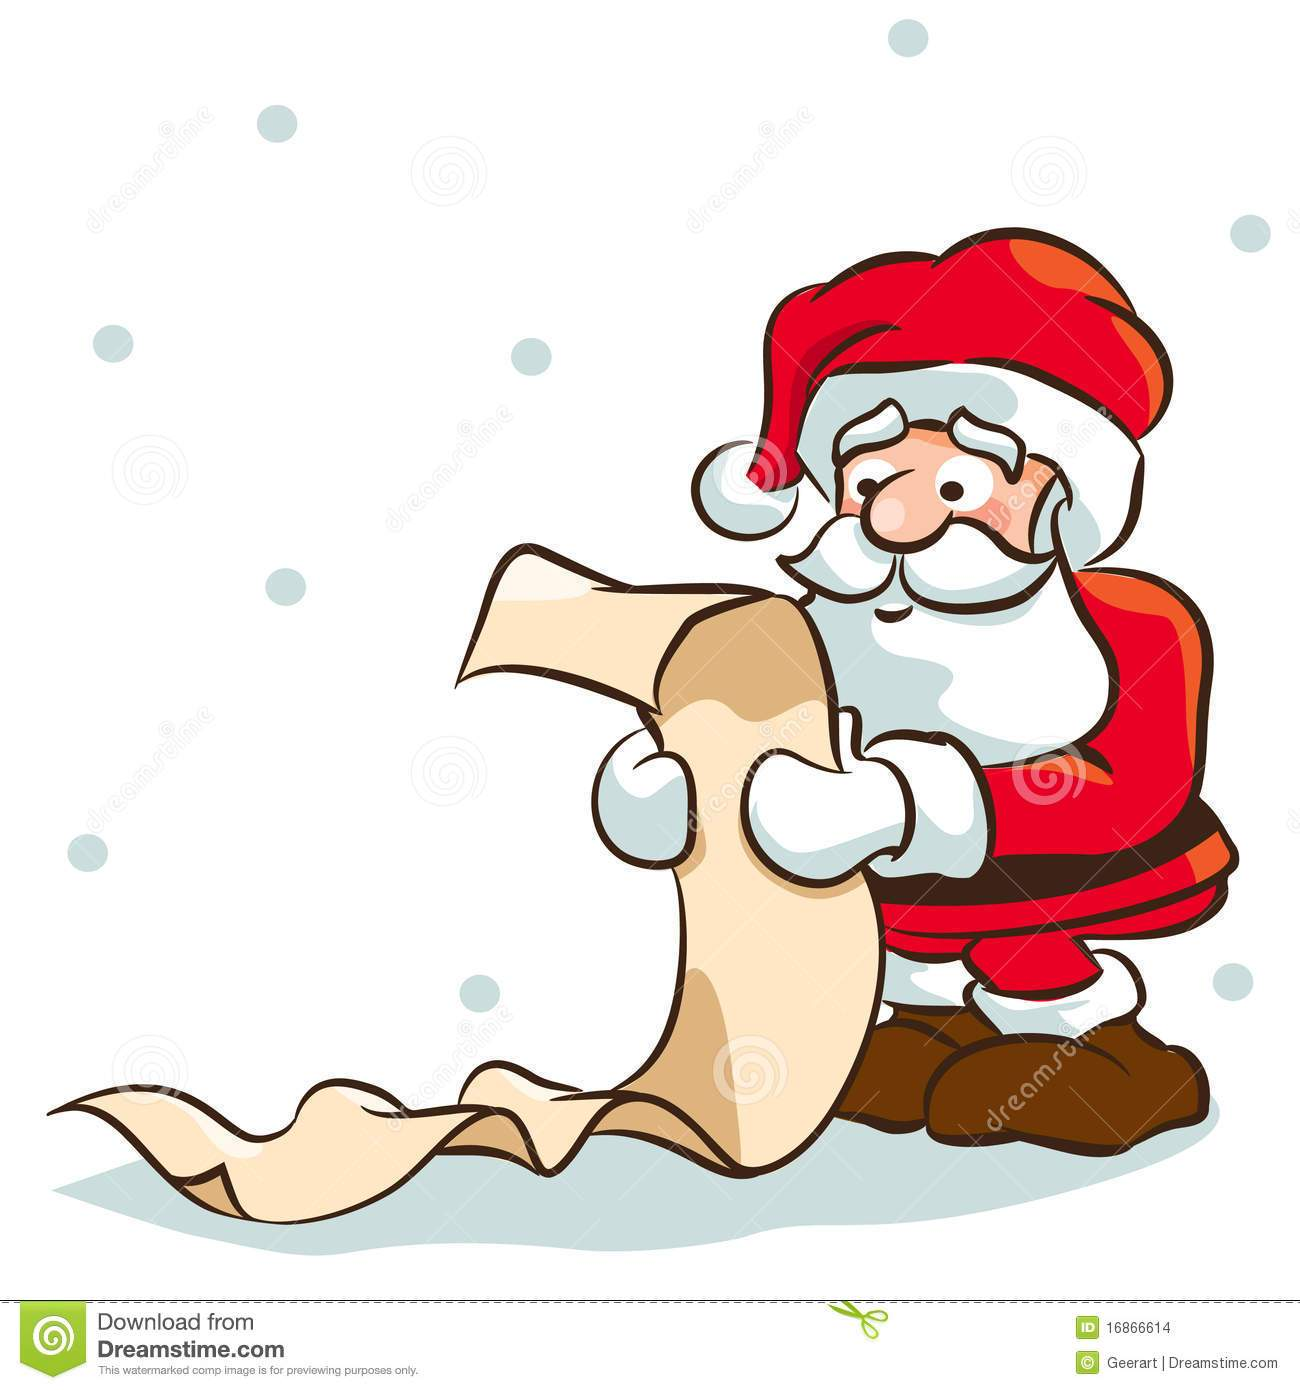 Santa checking his list clipart 5 » Clipart Portal.